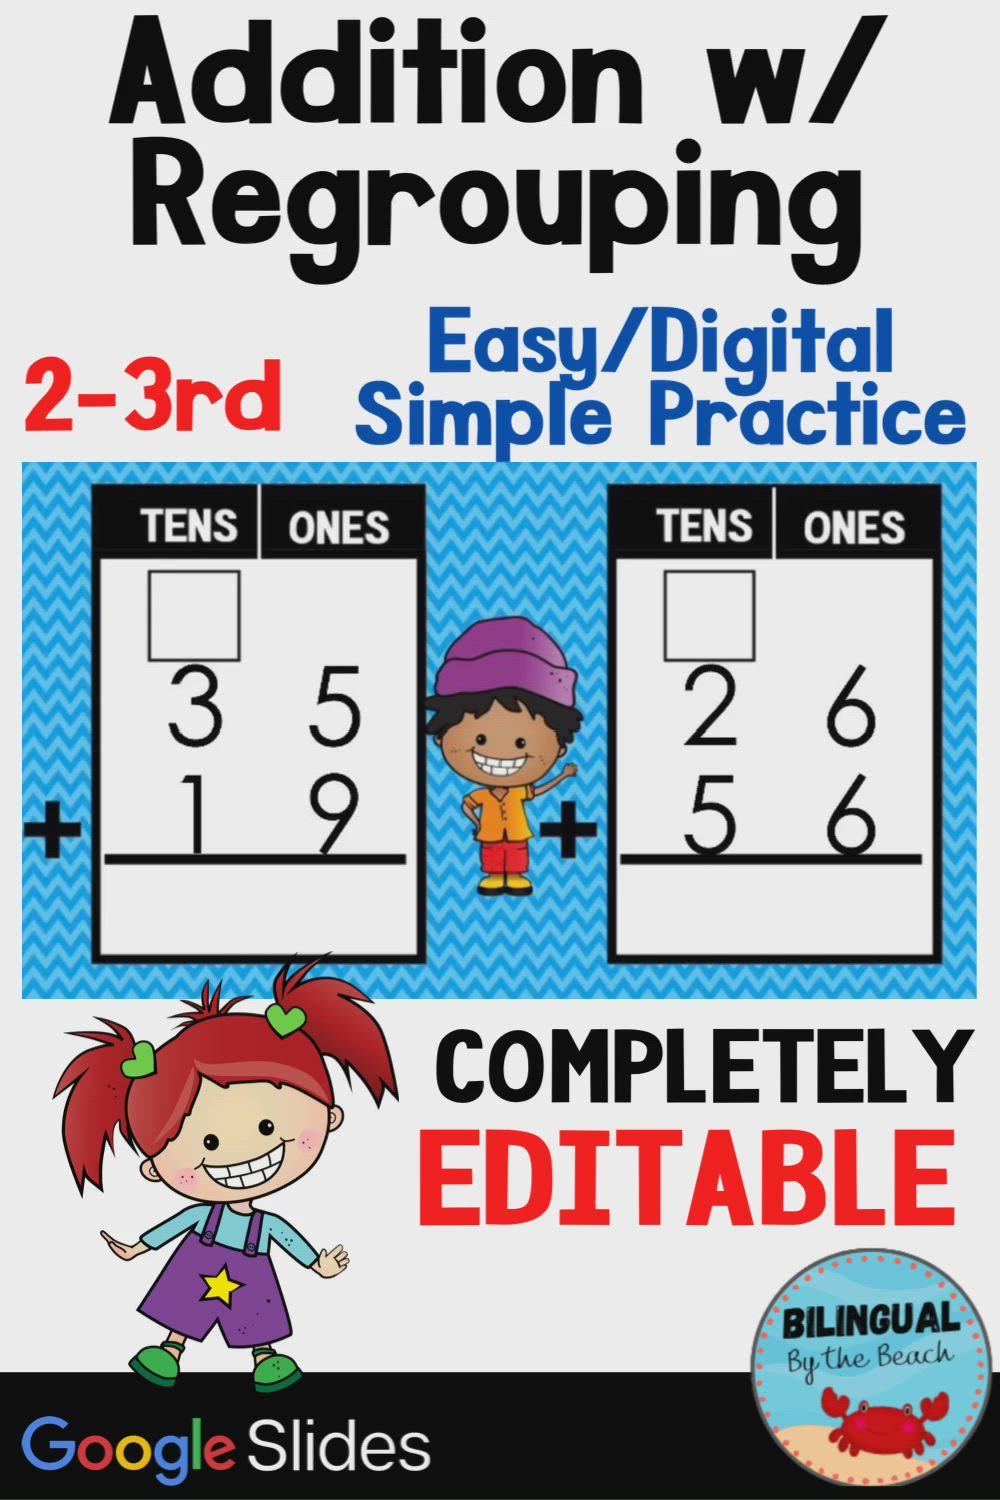 Addition With Regrouping Easy Digital Simple Practice Second Grade To 3 Grade Mat Video Addition And Subtraction Practice Early Elementary Resources Third Grade Math Addition with regrouping video grade